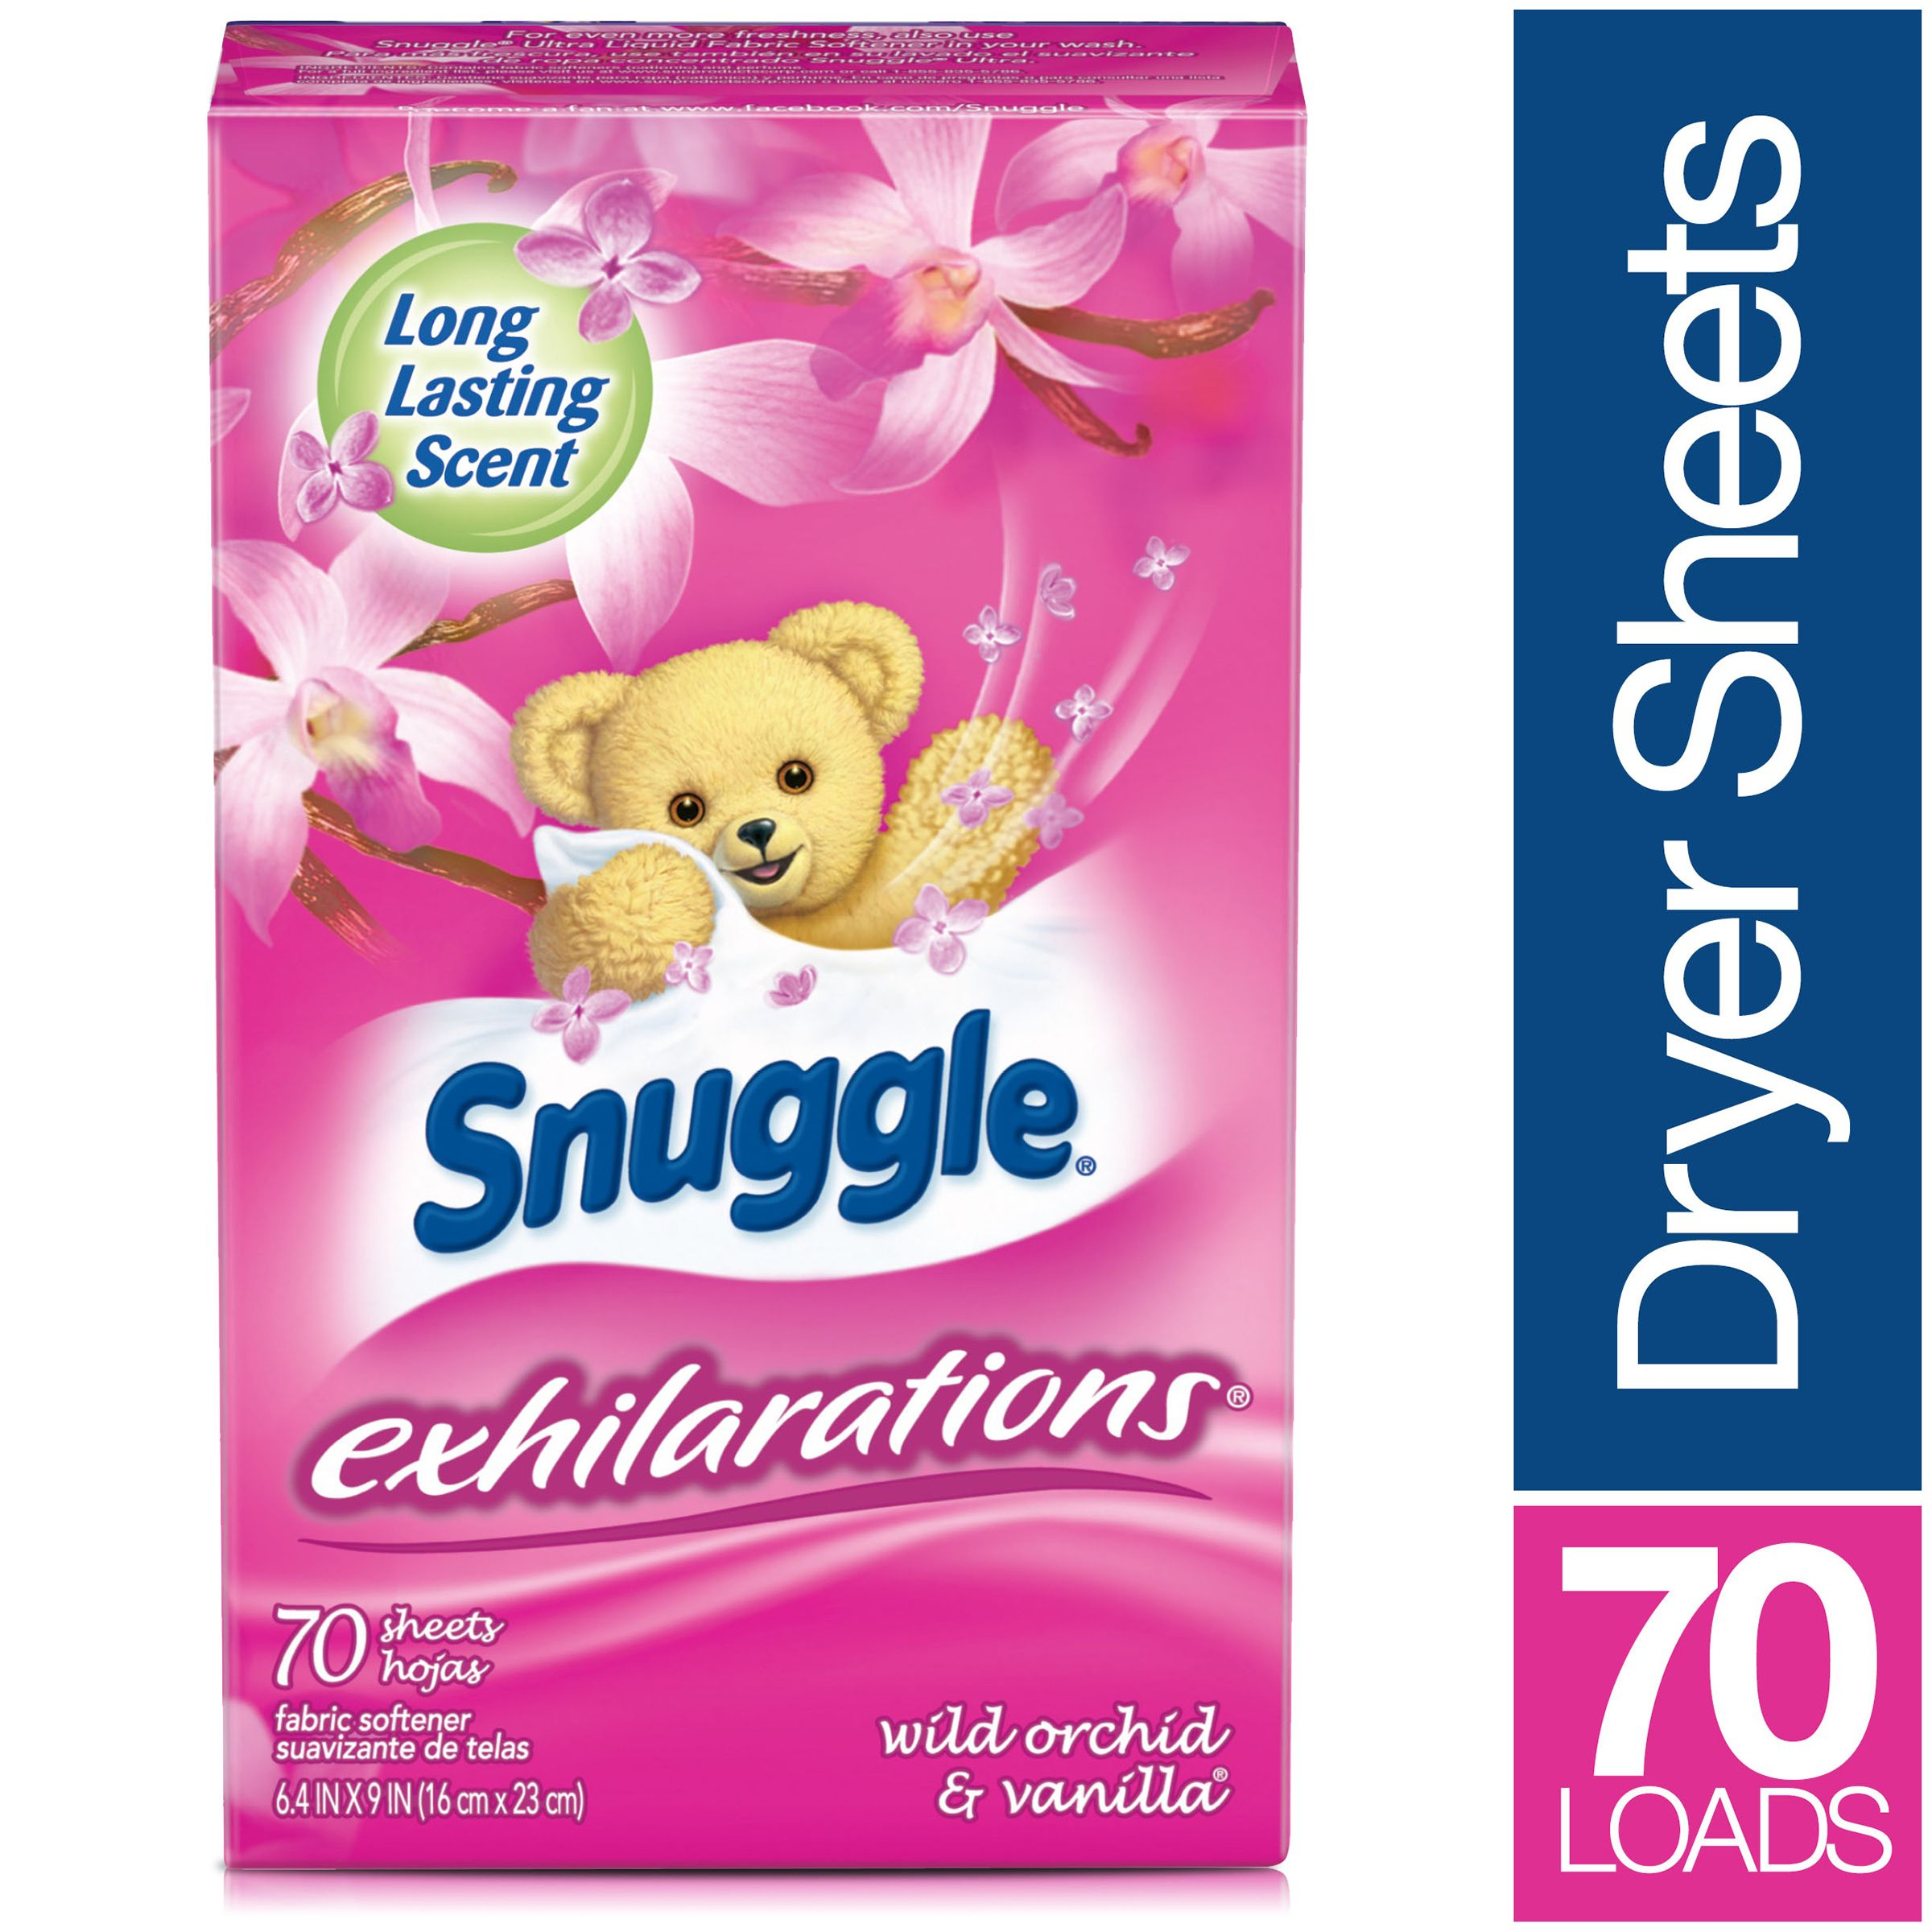 Snuggle Exhilarations Fabric Softener Sheets, Wild Orchid & Vanilla, 70 Count